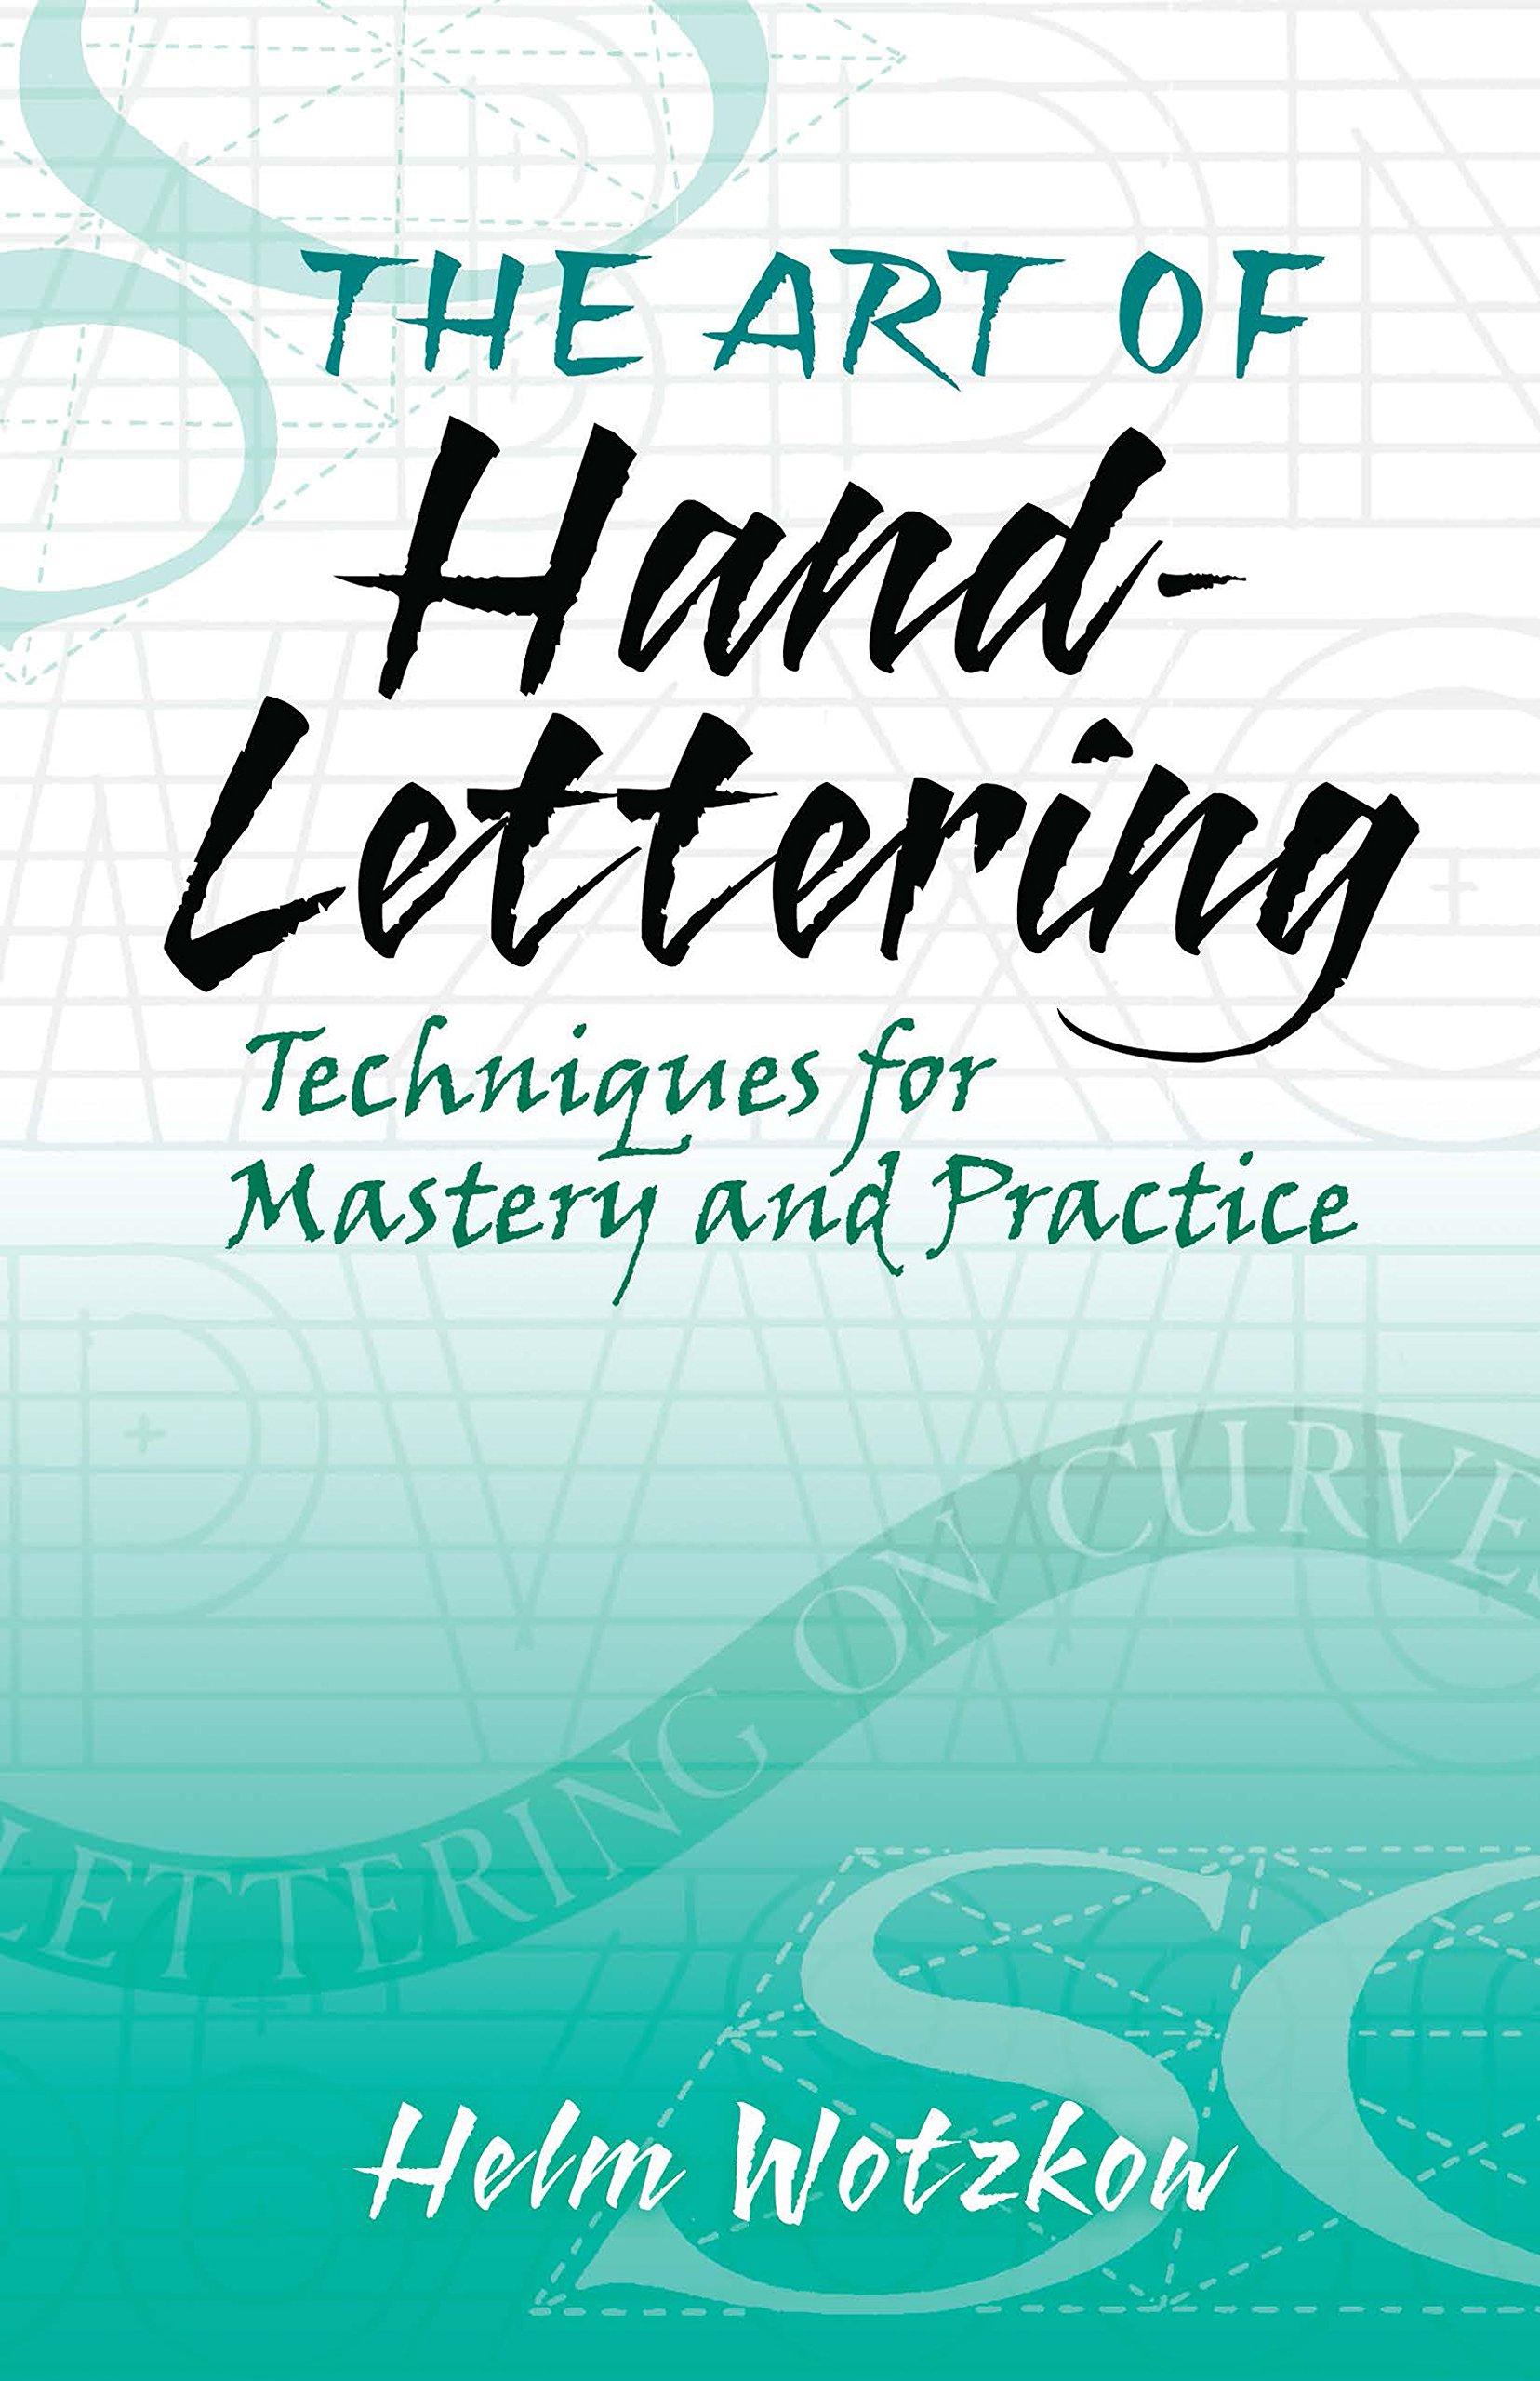 The Art of Hand-Lettering: Techniques for Mastery and Practice